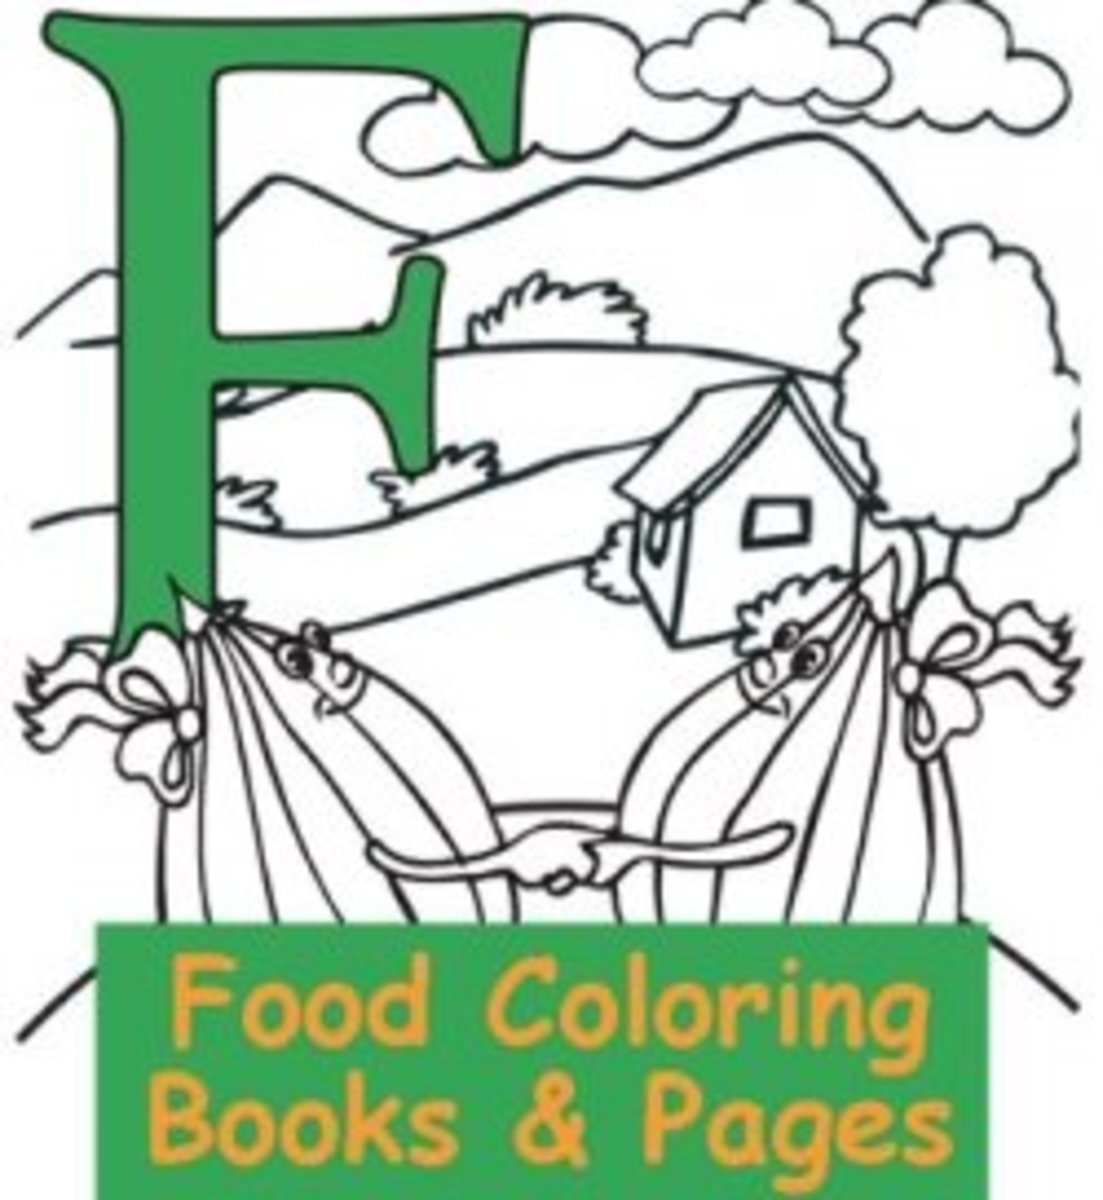 Coloring Page Artist Designer For More Than 30 Years Get Printable Pages At Lees Web Sites Link Info On Profile